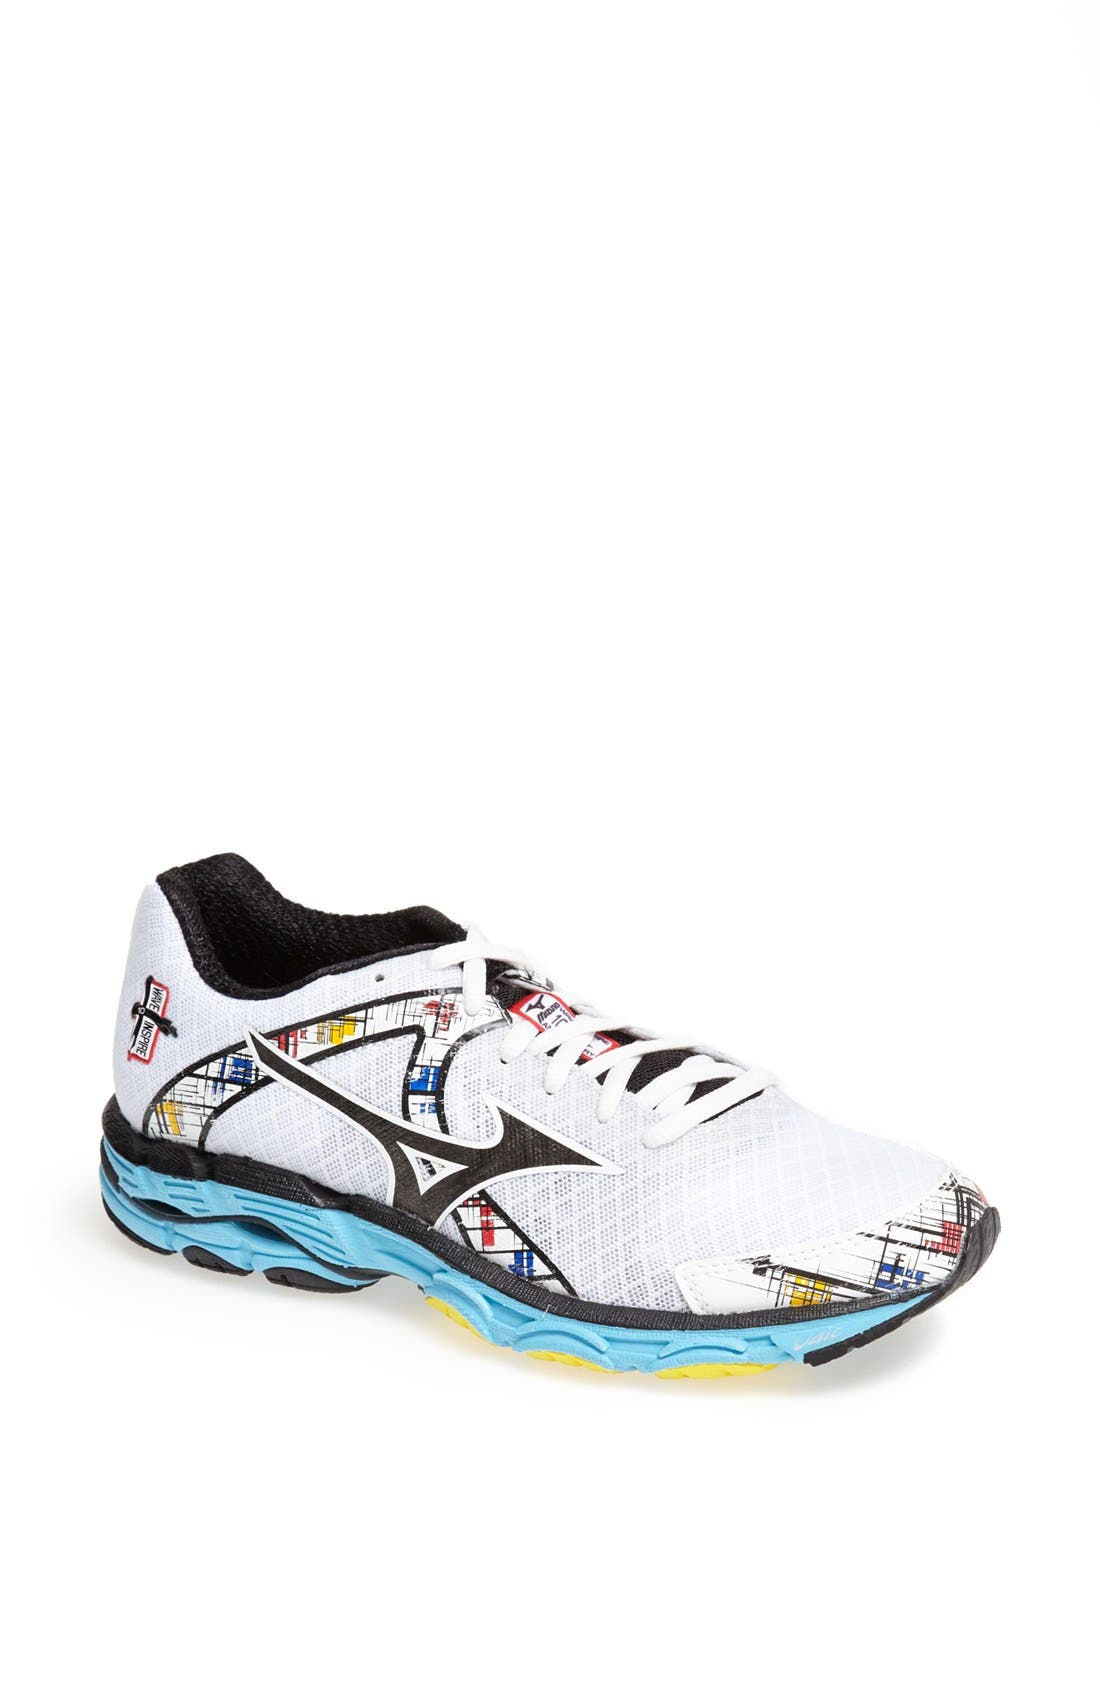 Main Image - Mizuno 'Wave Inspire 10th Anniversary' Running Shoe (Women)